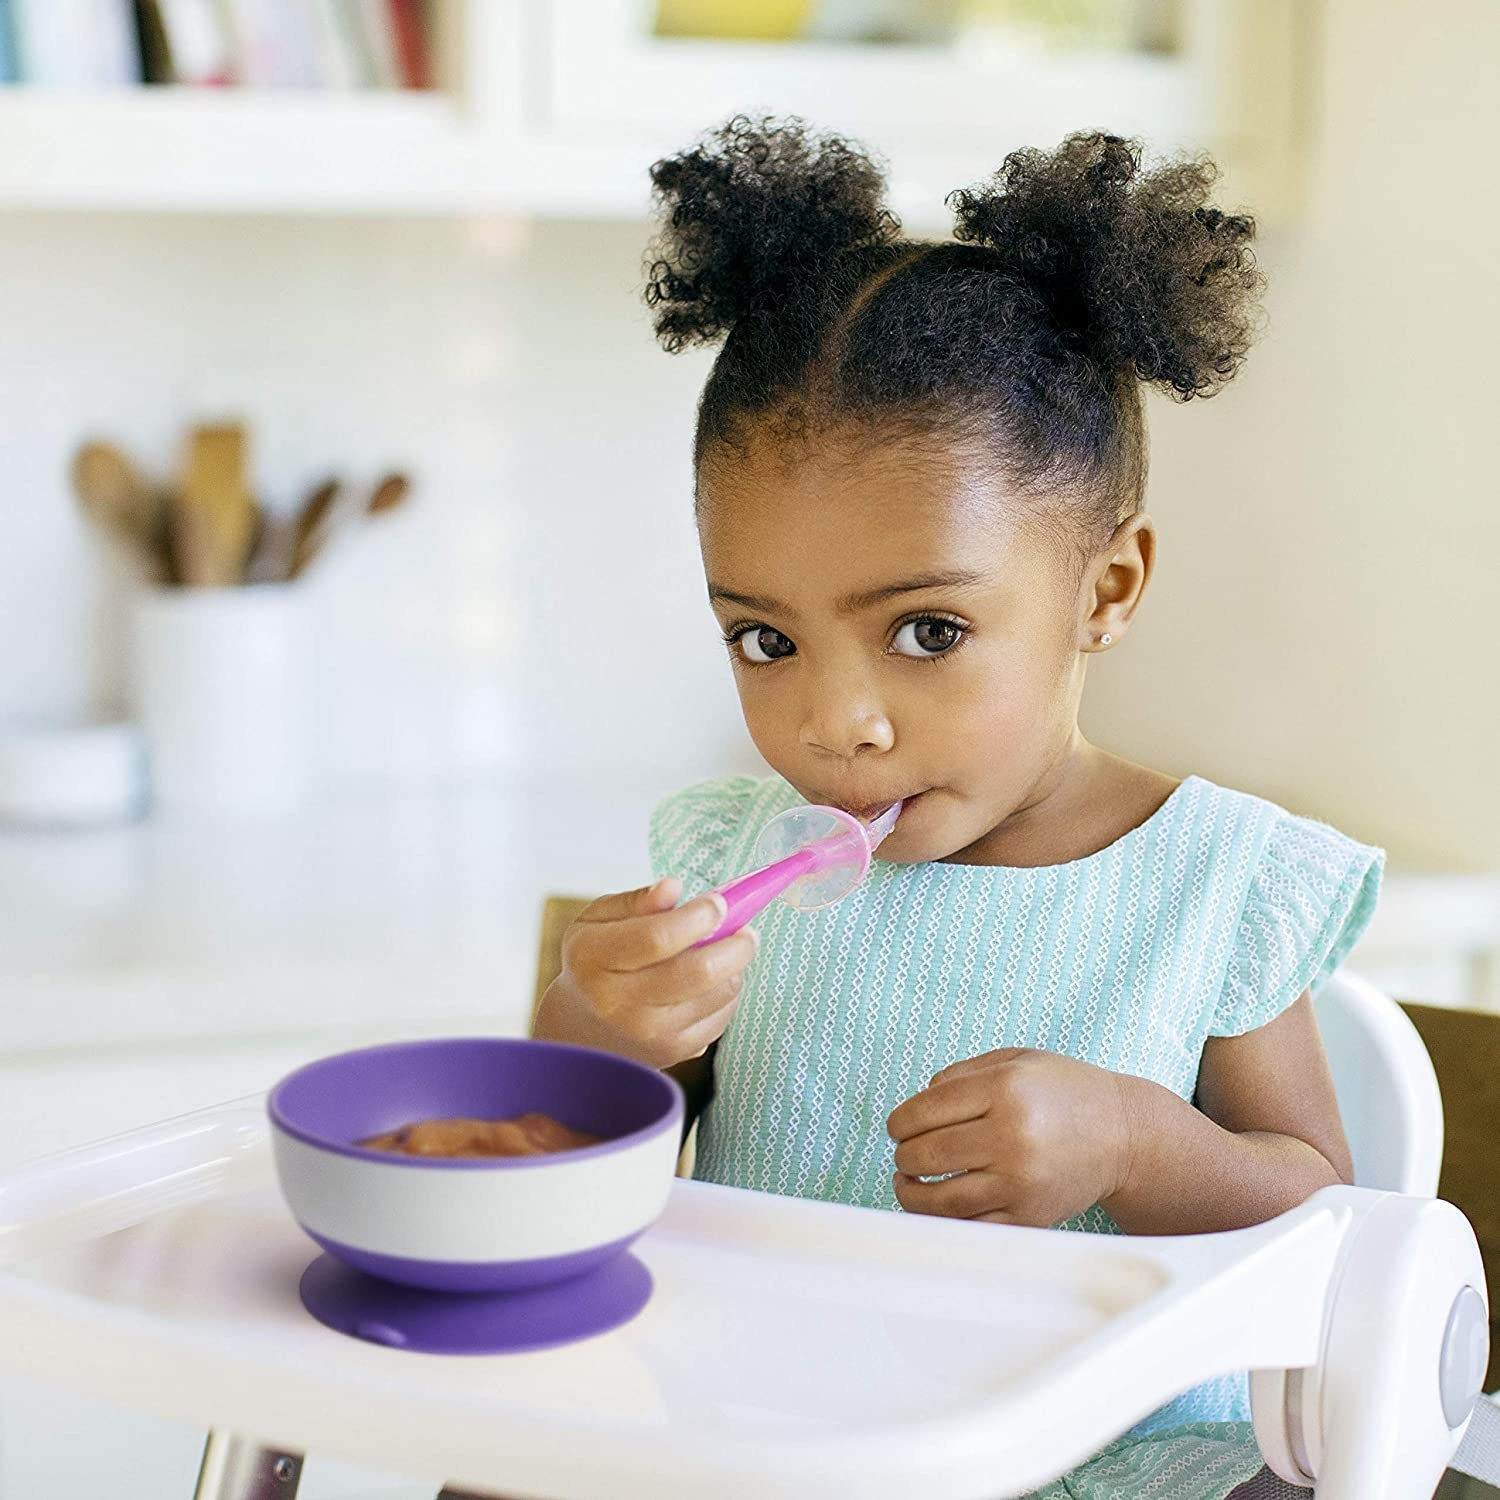 child eating out of the bowl